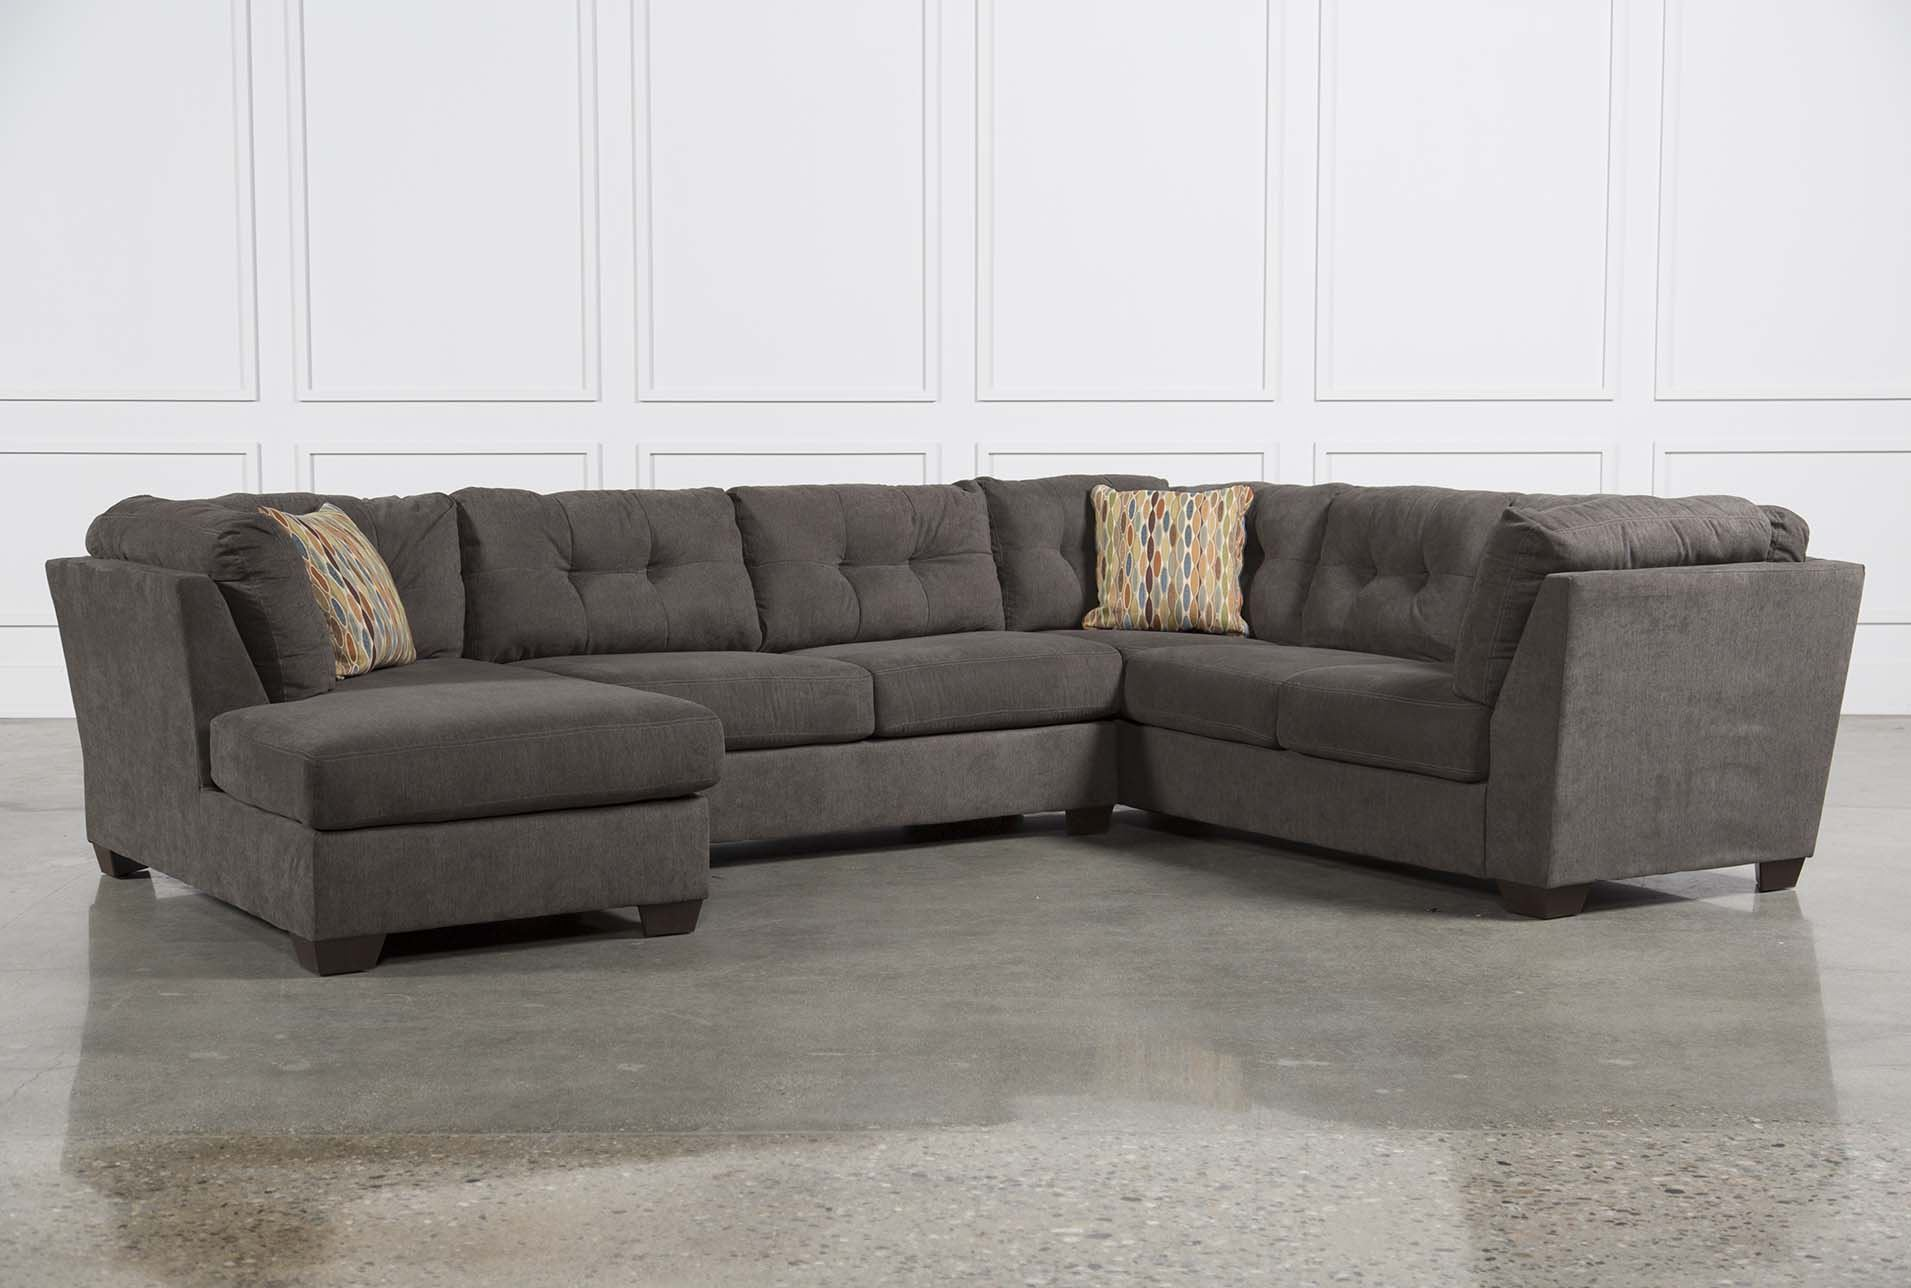 Delta city steel 3 piece sectional w sleeper left facing for Andrea 2 piece sleeper chaise